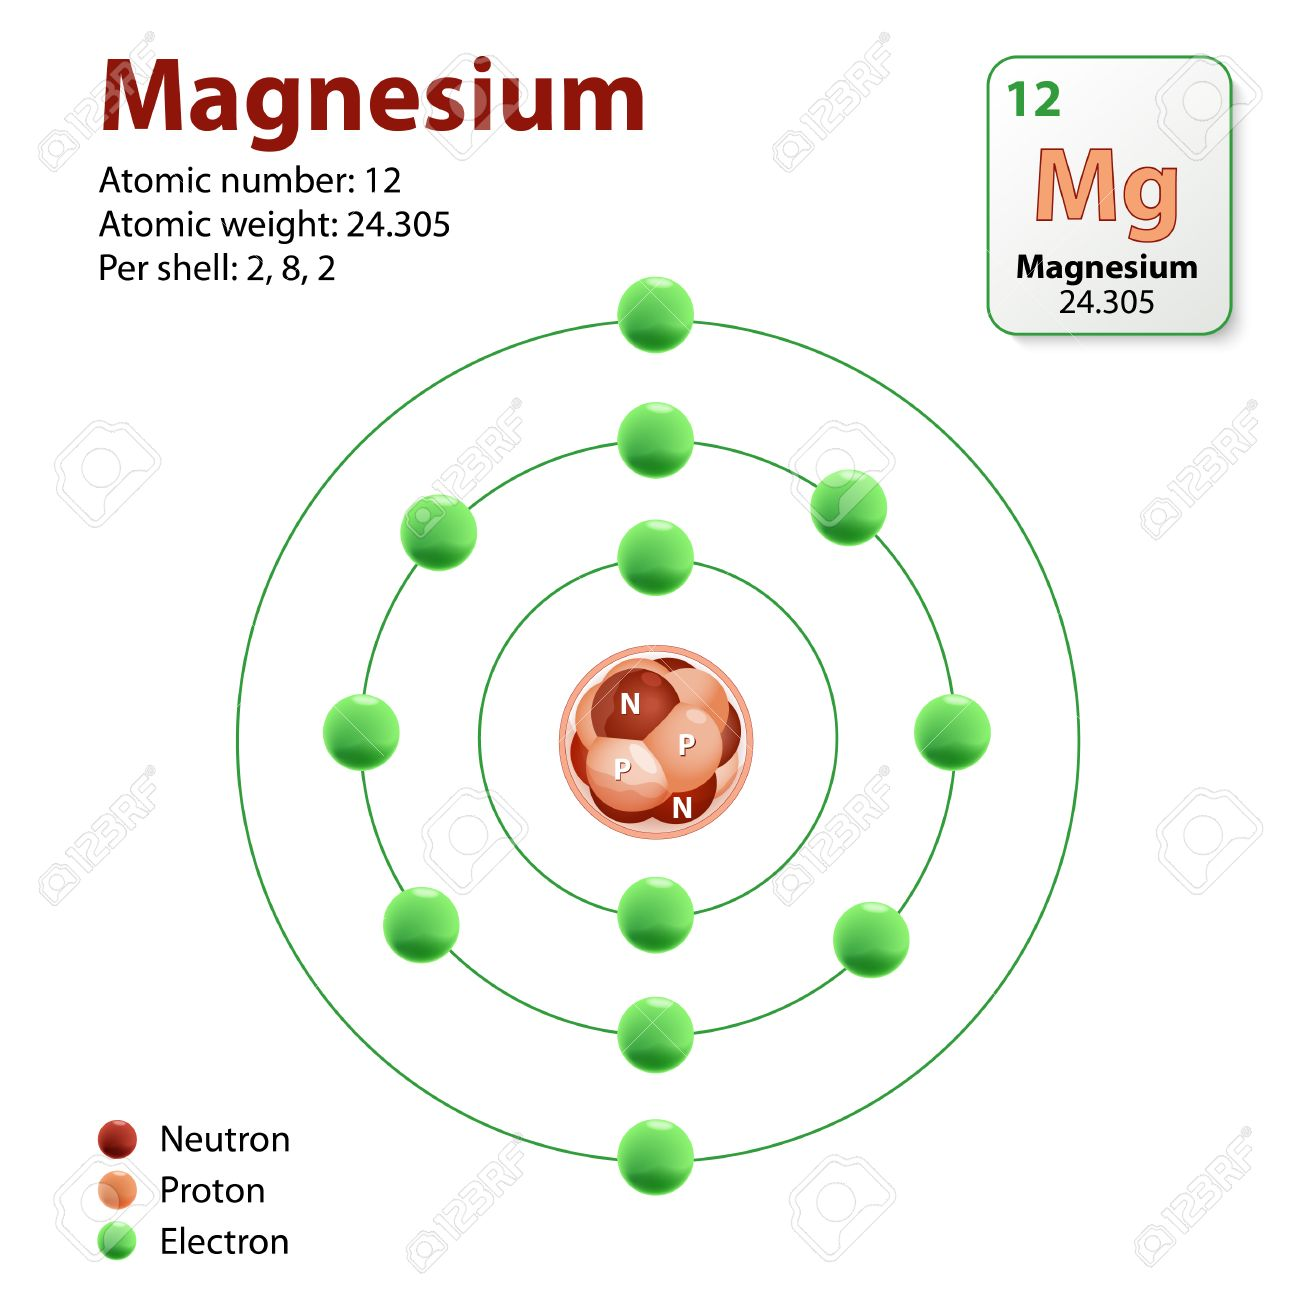 47269499-magnesium-atom-Diagram-representation-of-the-element-magnesium-Neutrons-Protons-and-Electrons-Stock-Vector.jpg (1300×1300)